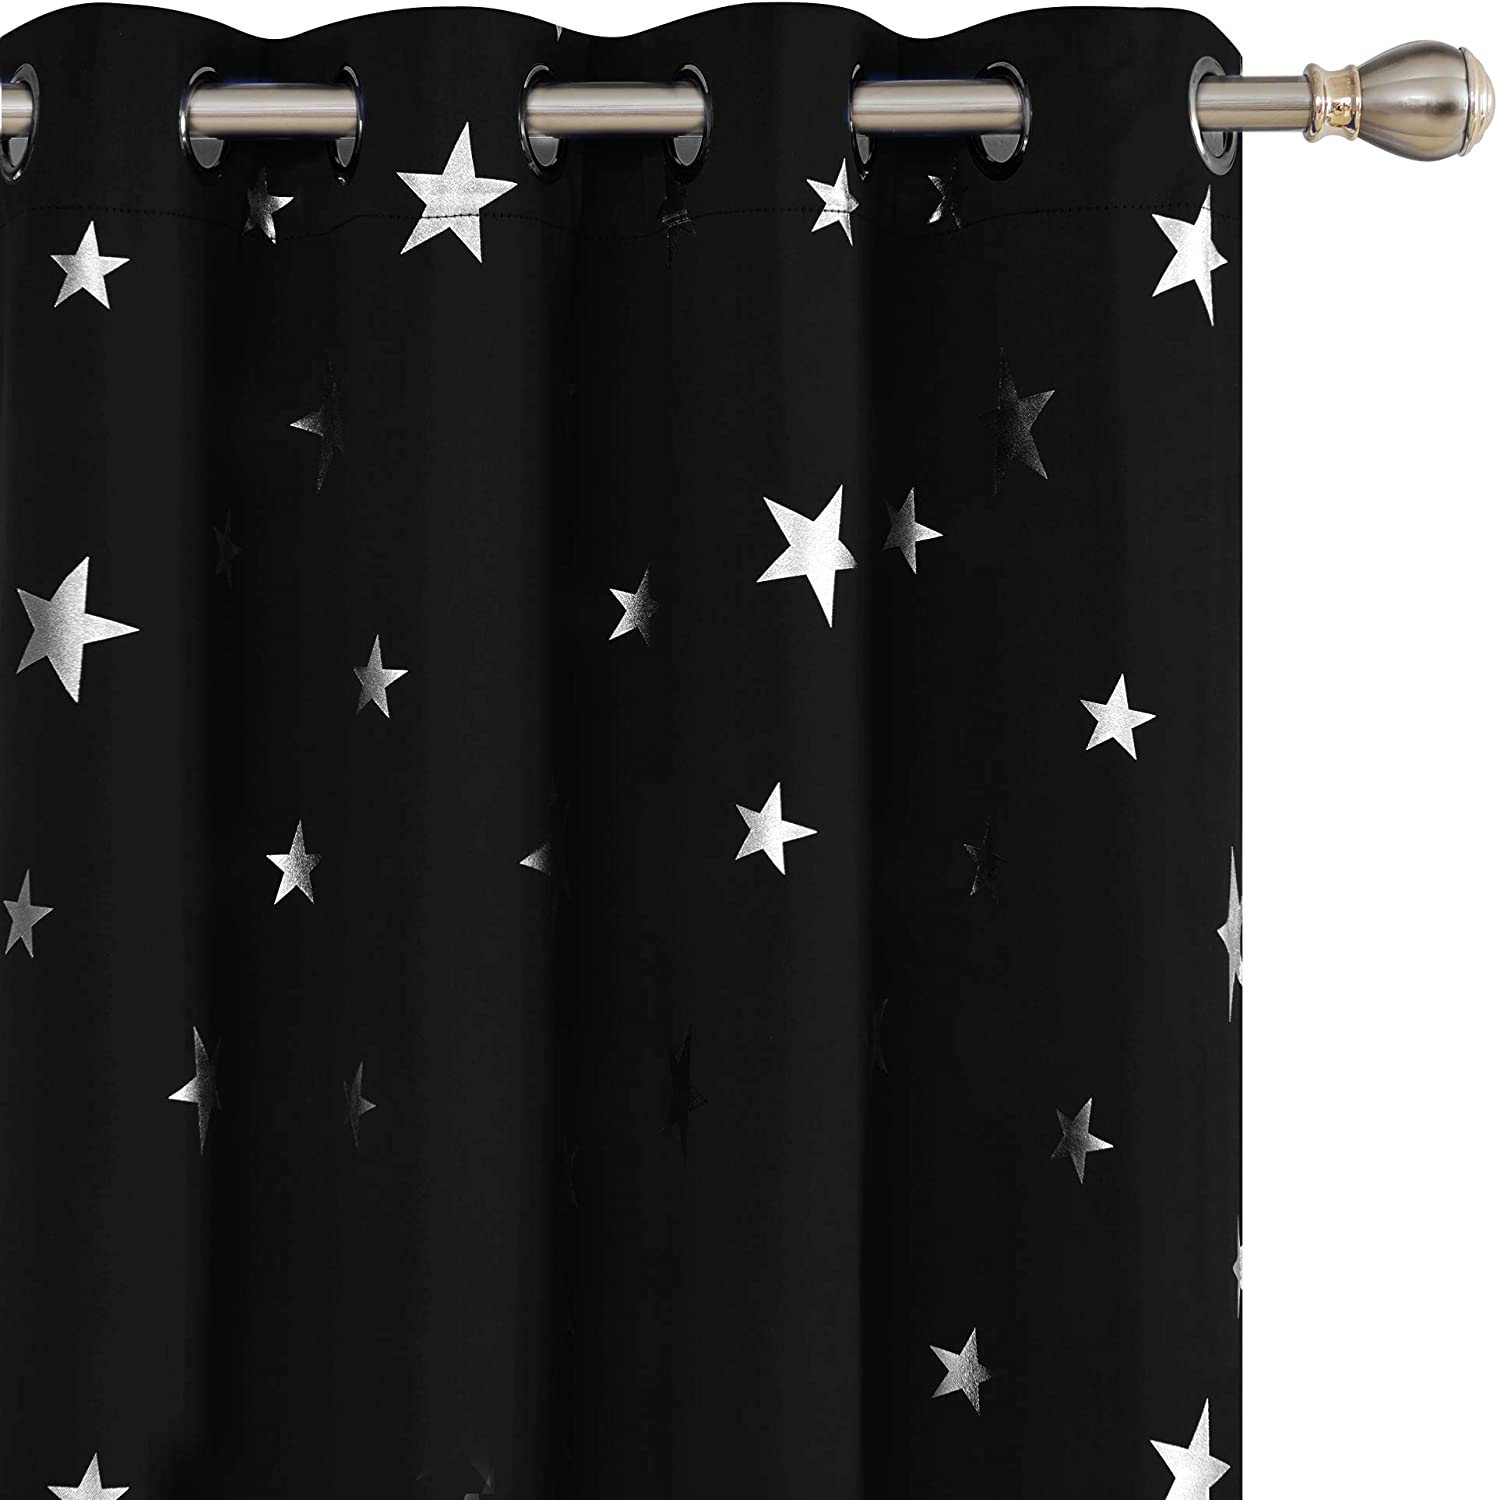 Deconovo Solid Thermal Insulated Blackout Curtains for Nursery with Silver Star Pattern 52 x 84 Inch Black 1 Pair